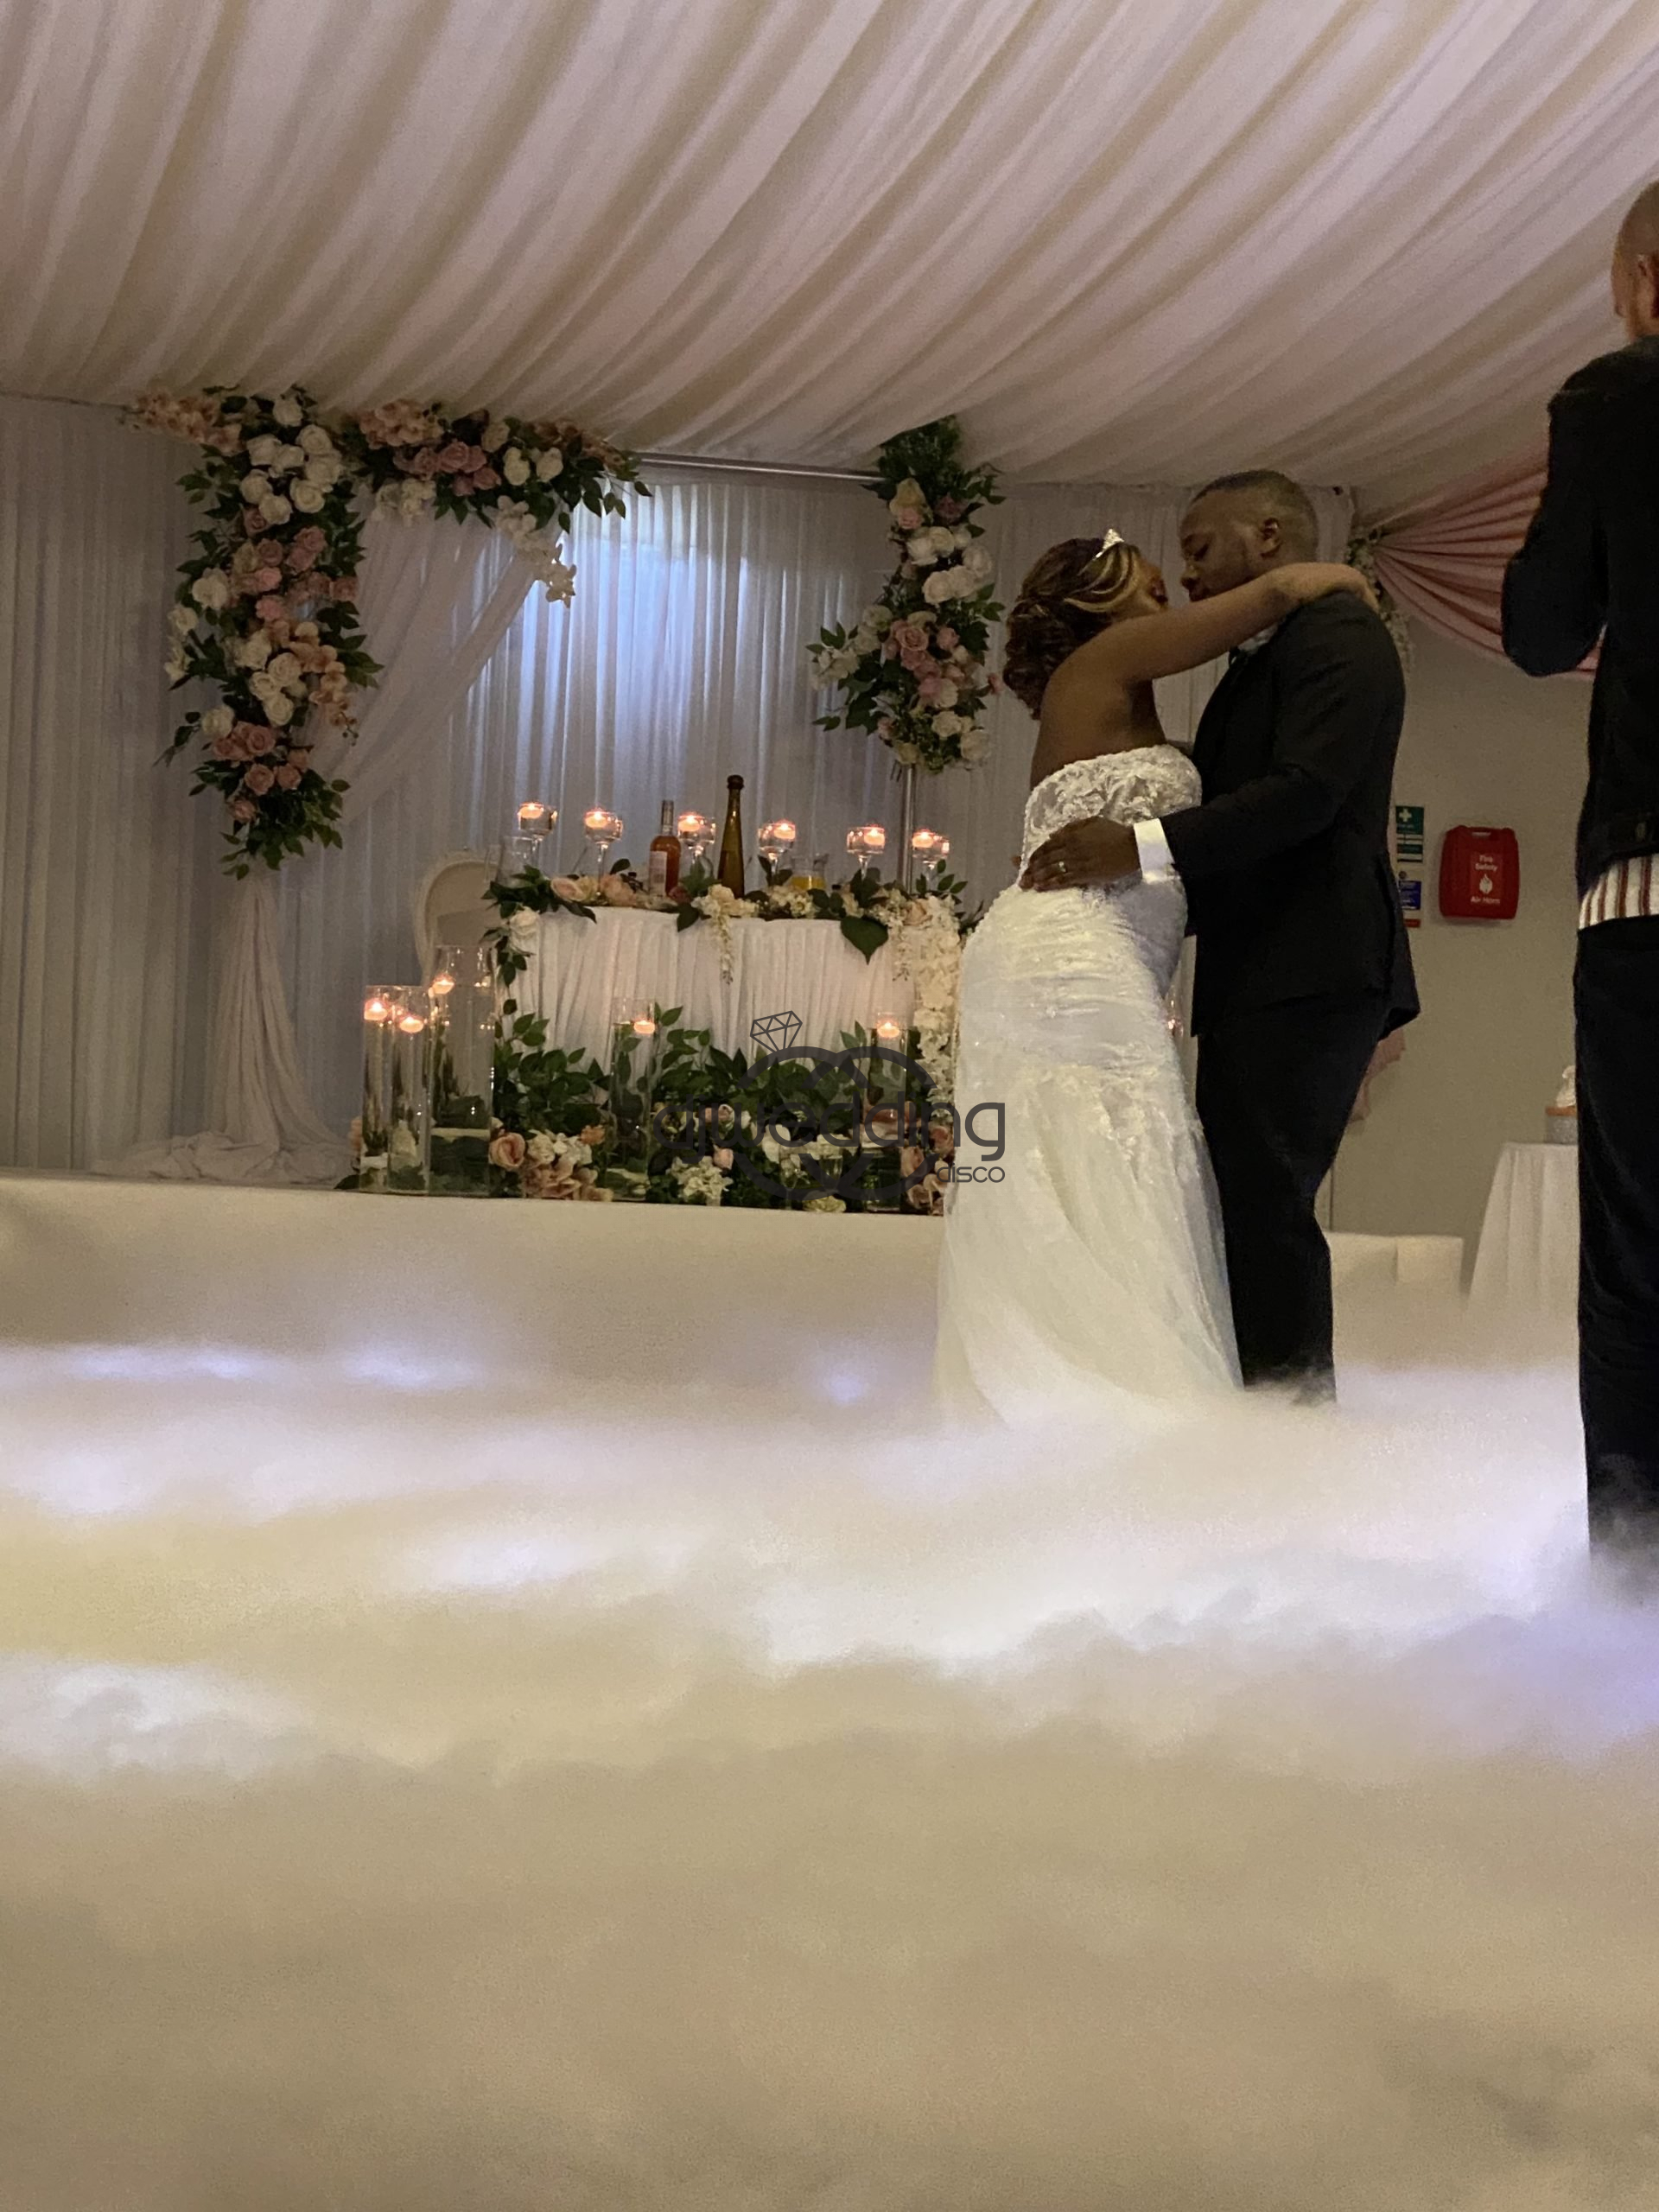 -DJ-Wedding-Disco-Photo-booth-dance-floor-sparks-dry-ice-confetti-love-letter-hire-24